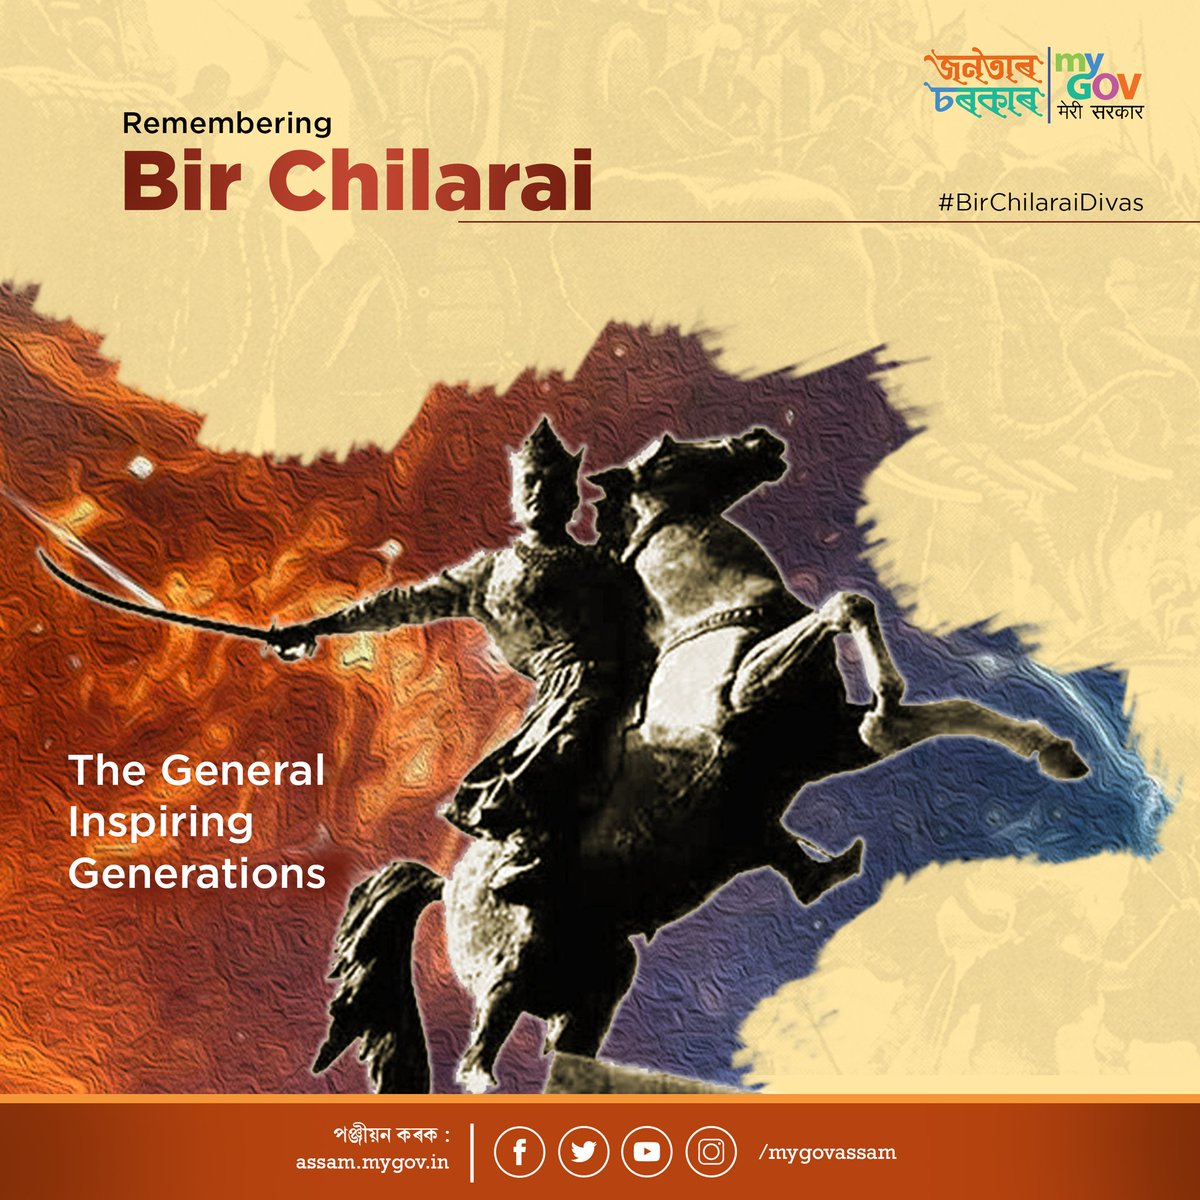 Chilarai, brother and commander-in-chief of Koch king Nara Narayana, is well known for his valour, skilled warfare techniques and swift decision making abilities, and hence came to be called 'Chila Rai' (kite king). #BirChilaraiDivas